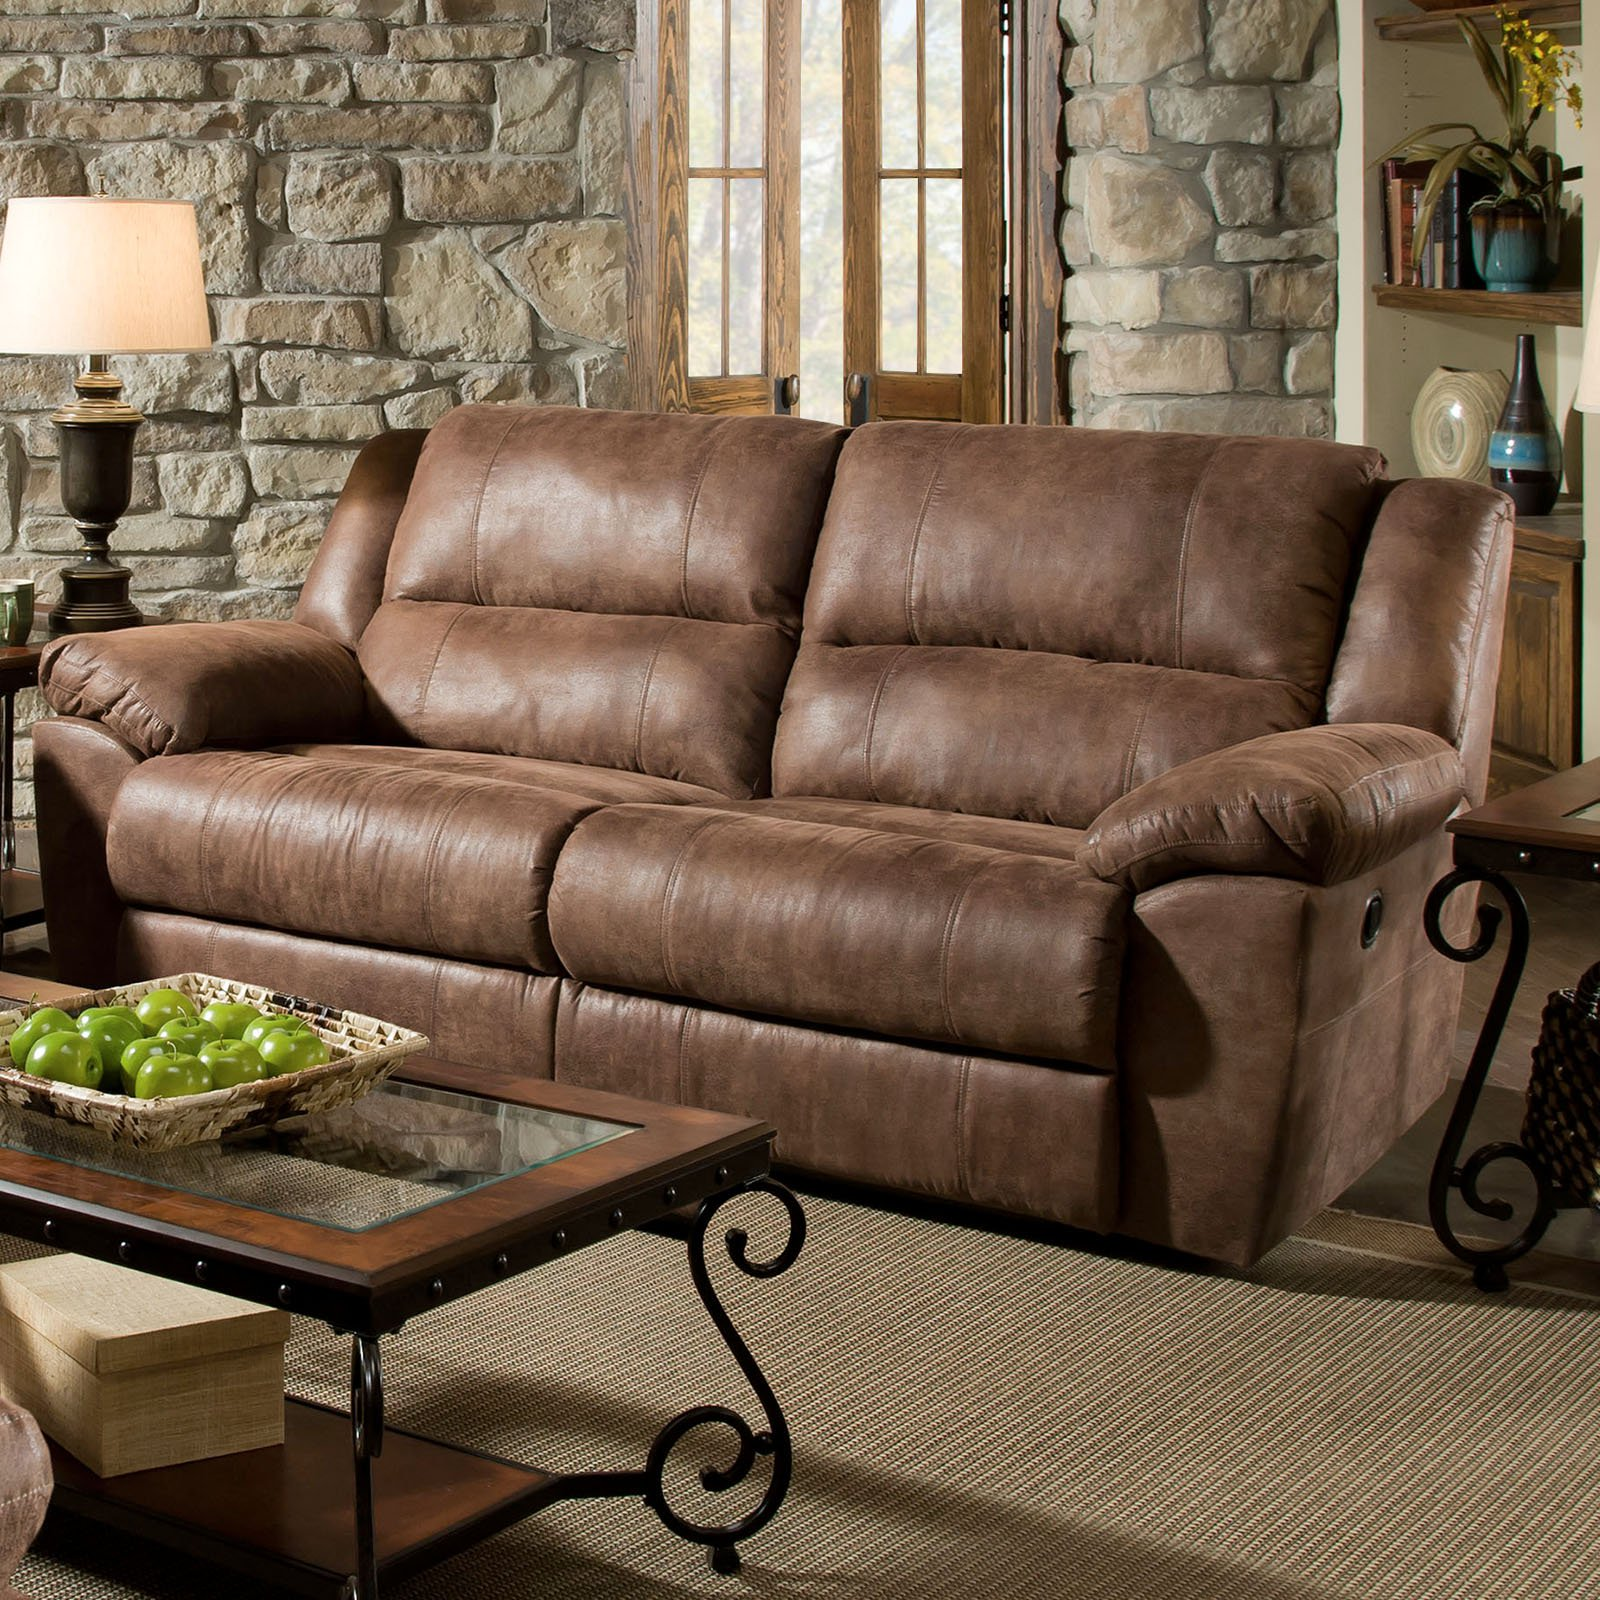 Simmons Upholstery Phoenix Double Motion Sofa - Mocha : brown suede sectional - Sectionals, Sofas & Couches